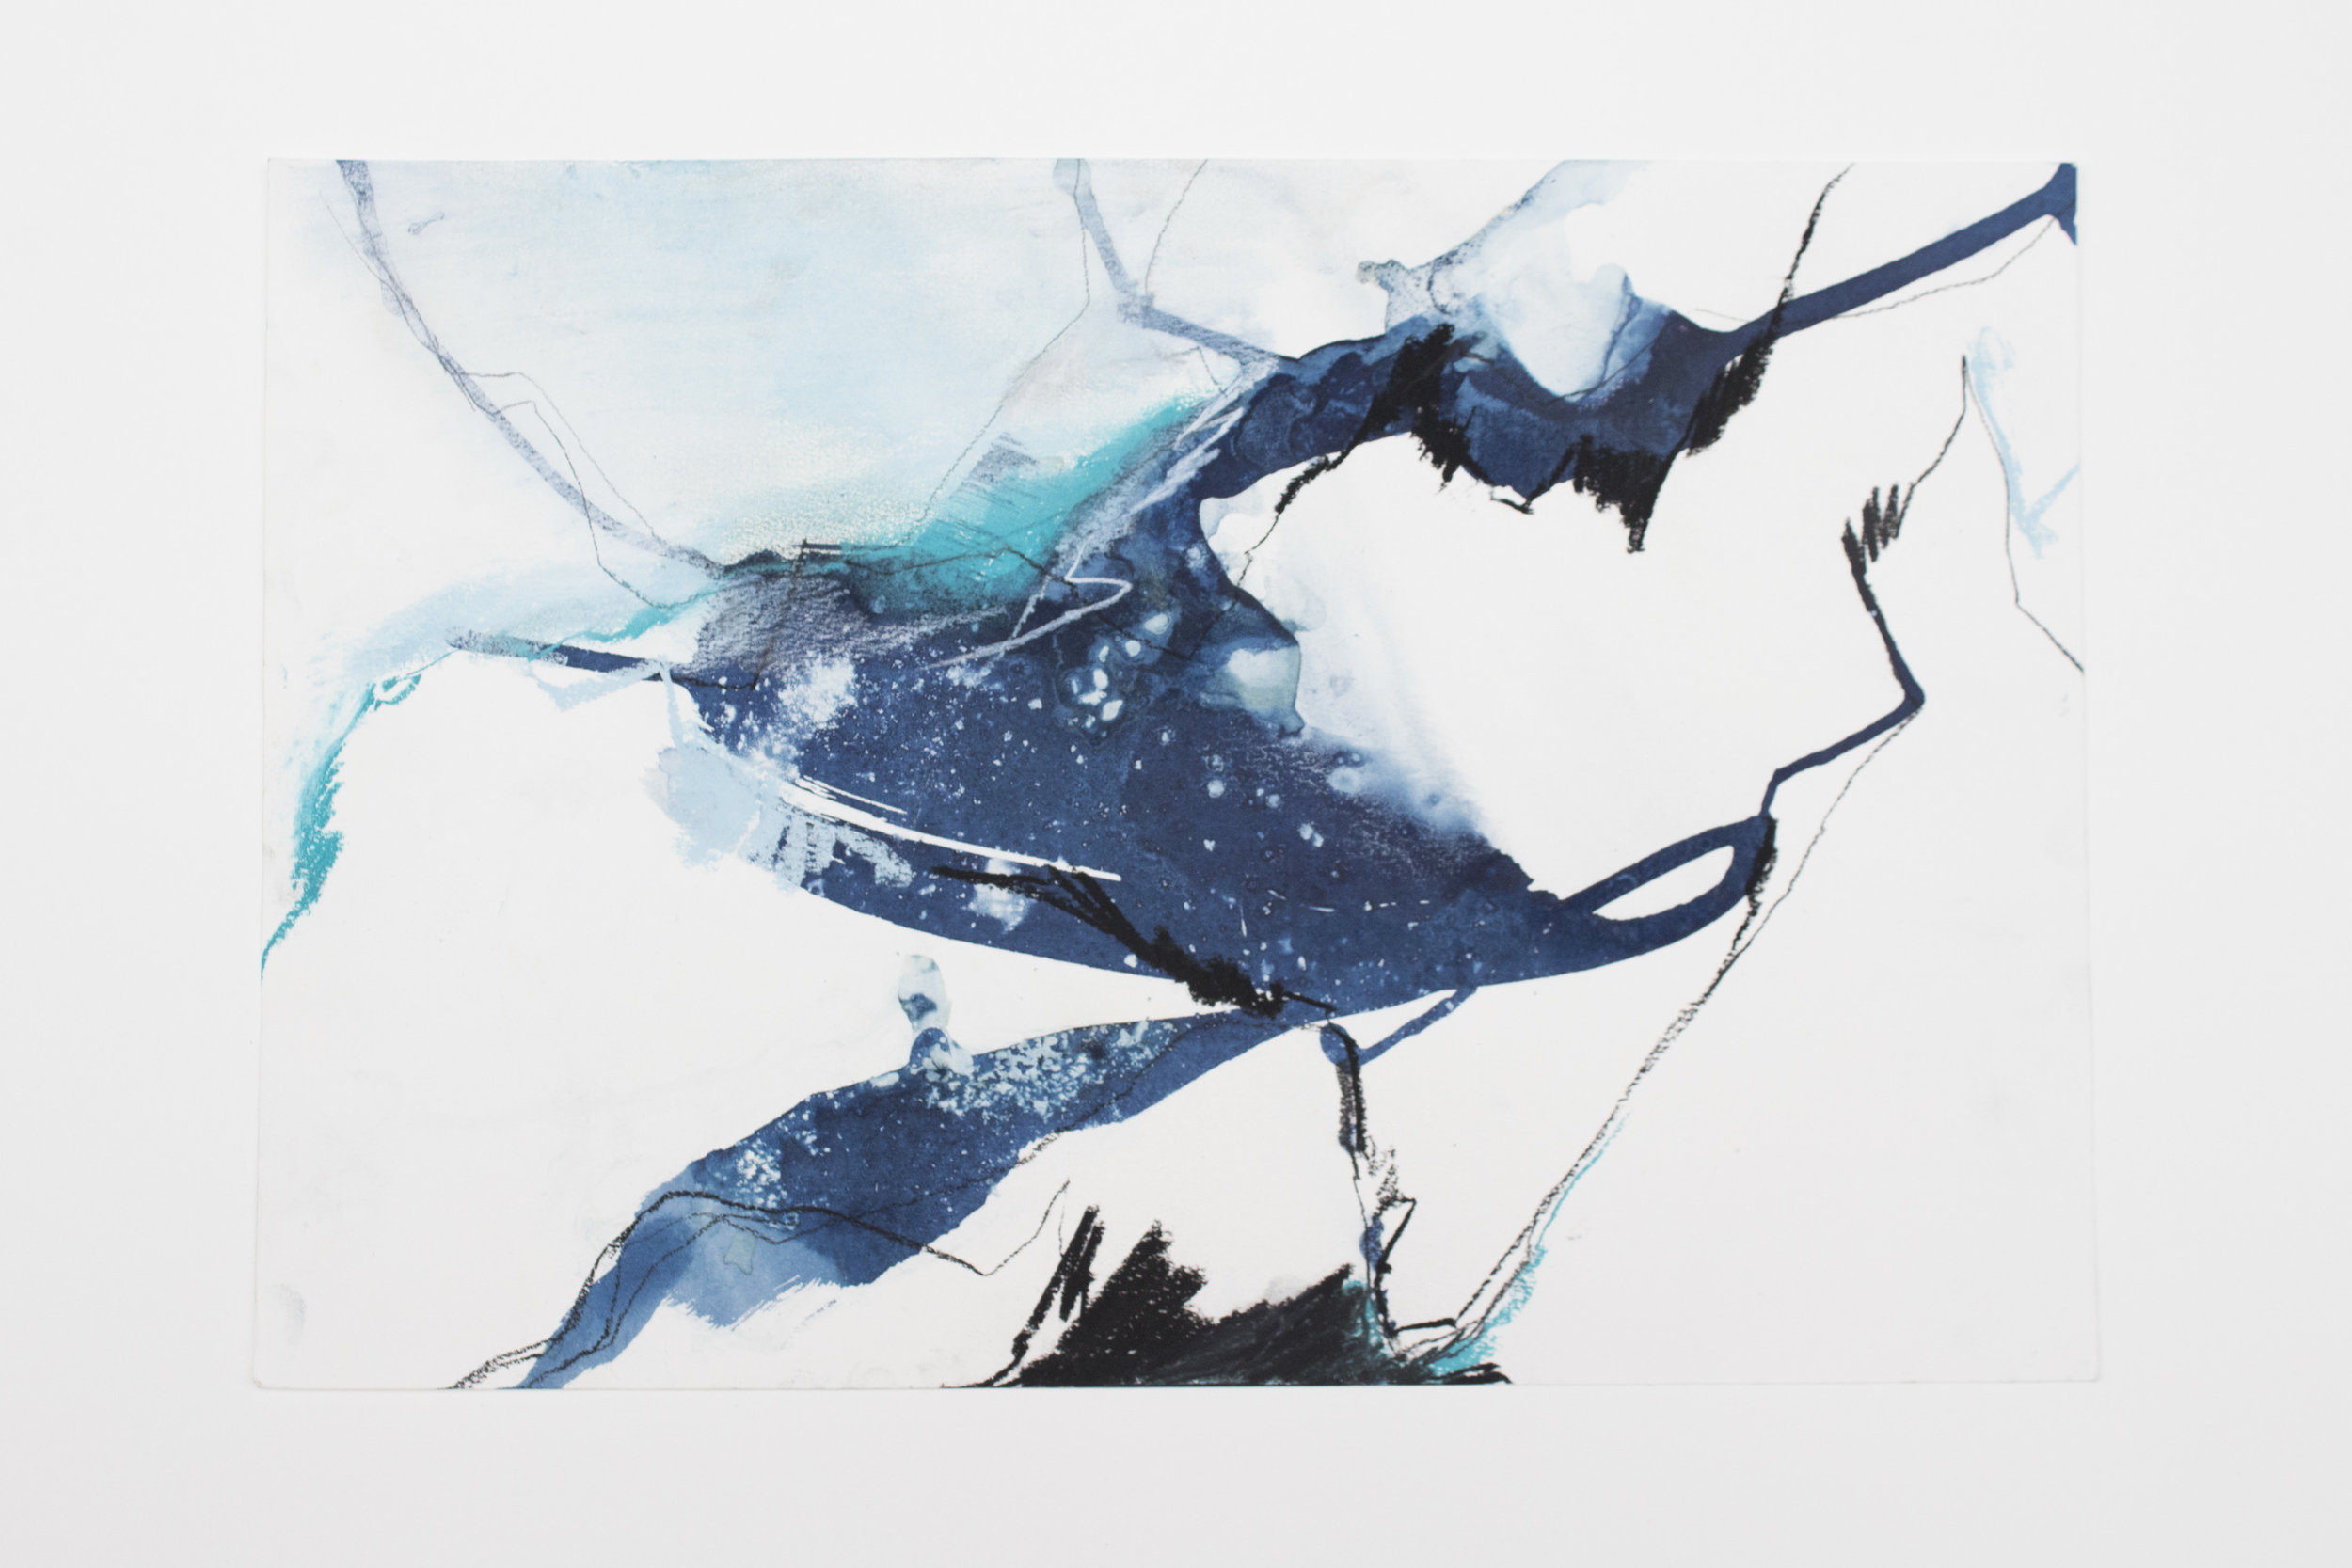 Tidewater #5     | 2018 | 12x18in | pastel, charcoal, and cyanotype on paper (exposed with stones and dirt sourced from the Juneau Icefield and the coast of SE Alaska, fixed with ocean and glacier water) |  $250